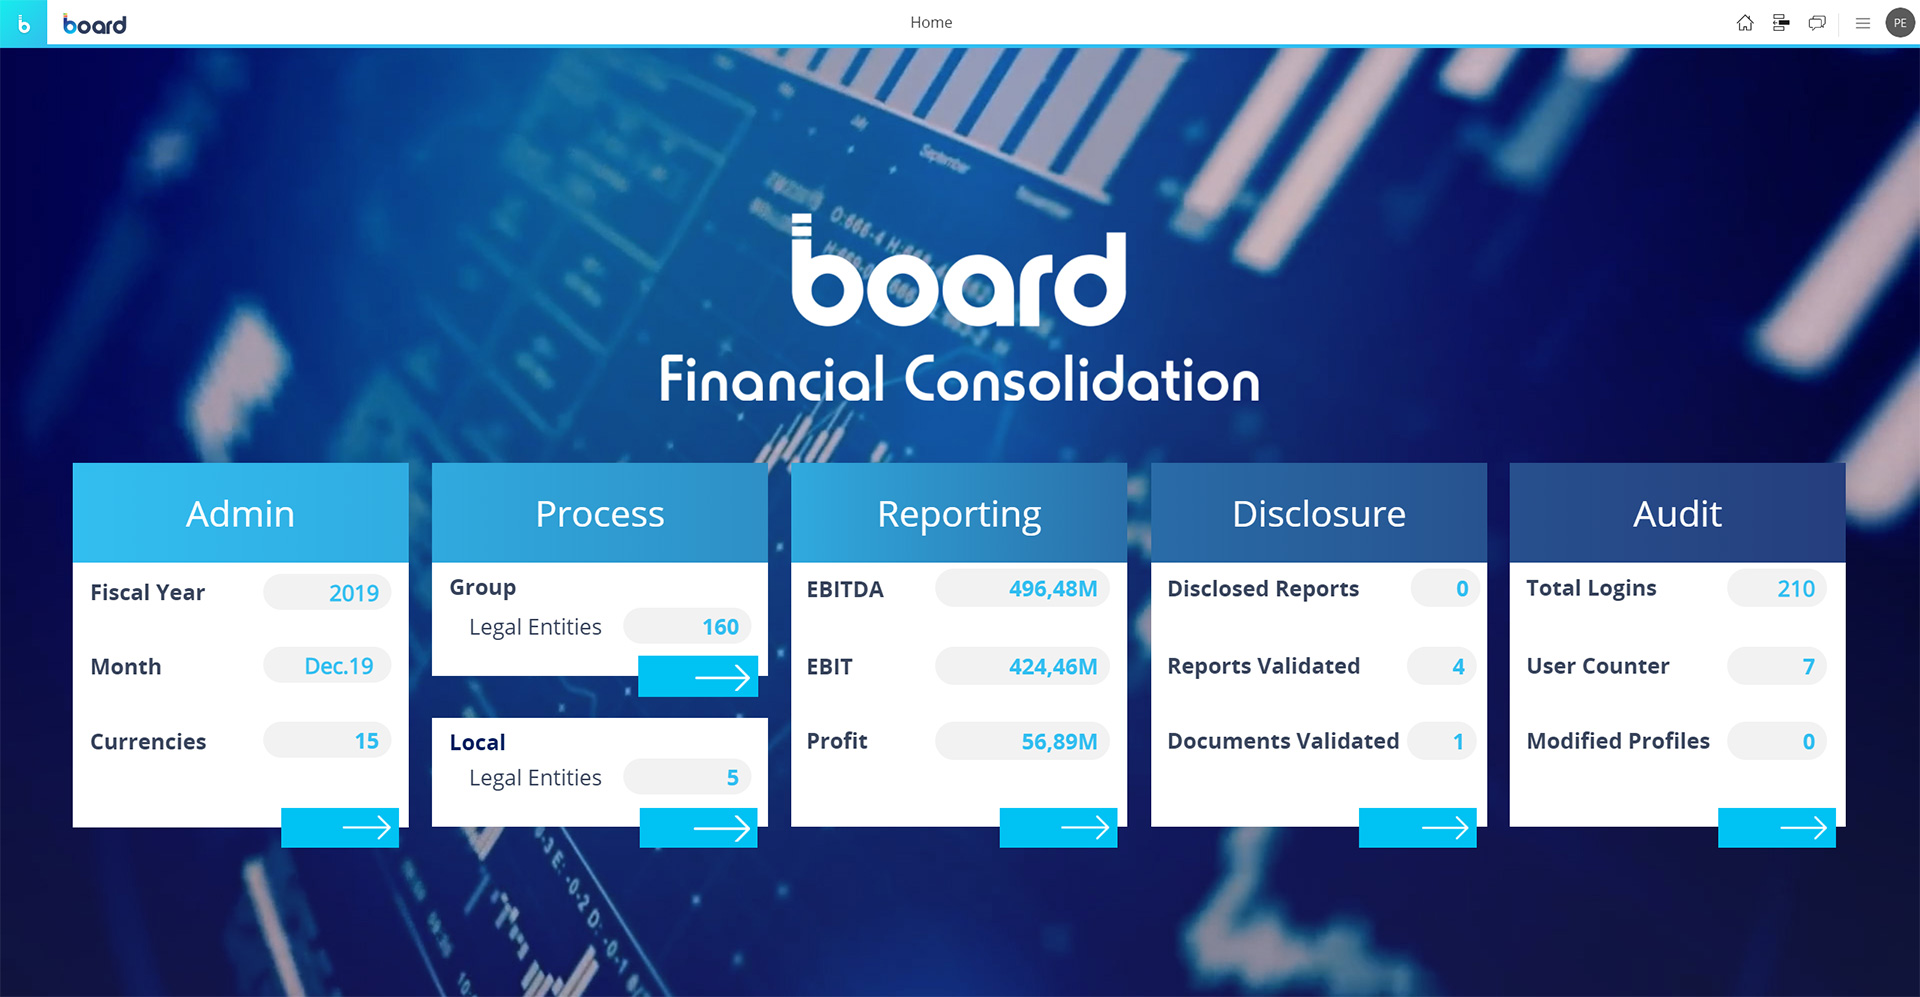 Sample of Financial Consolidation Software Screen